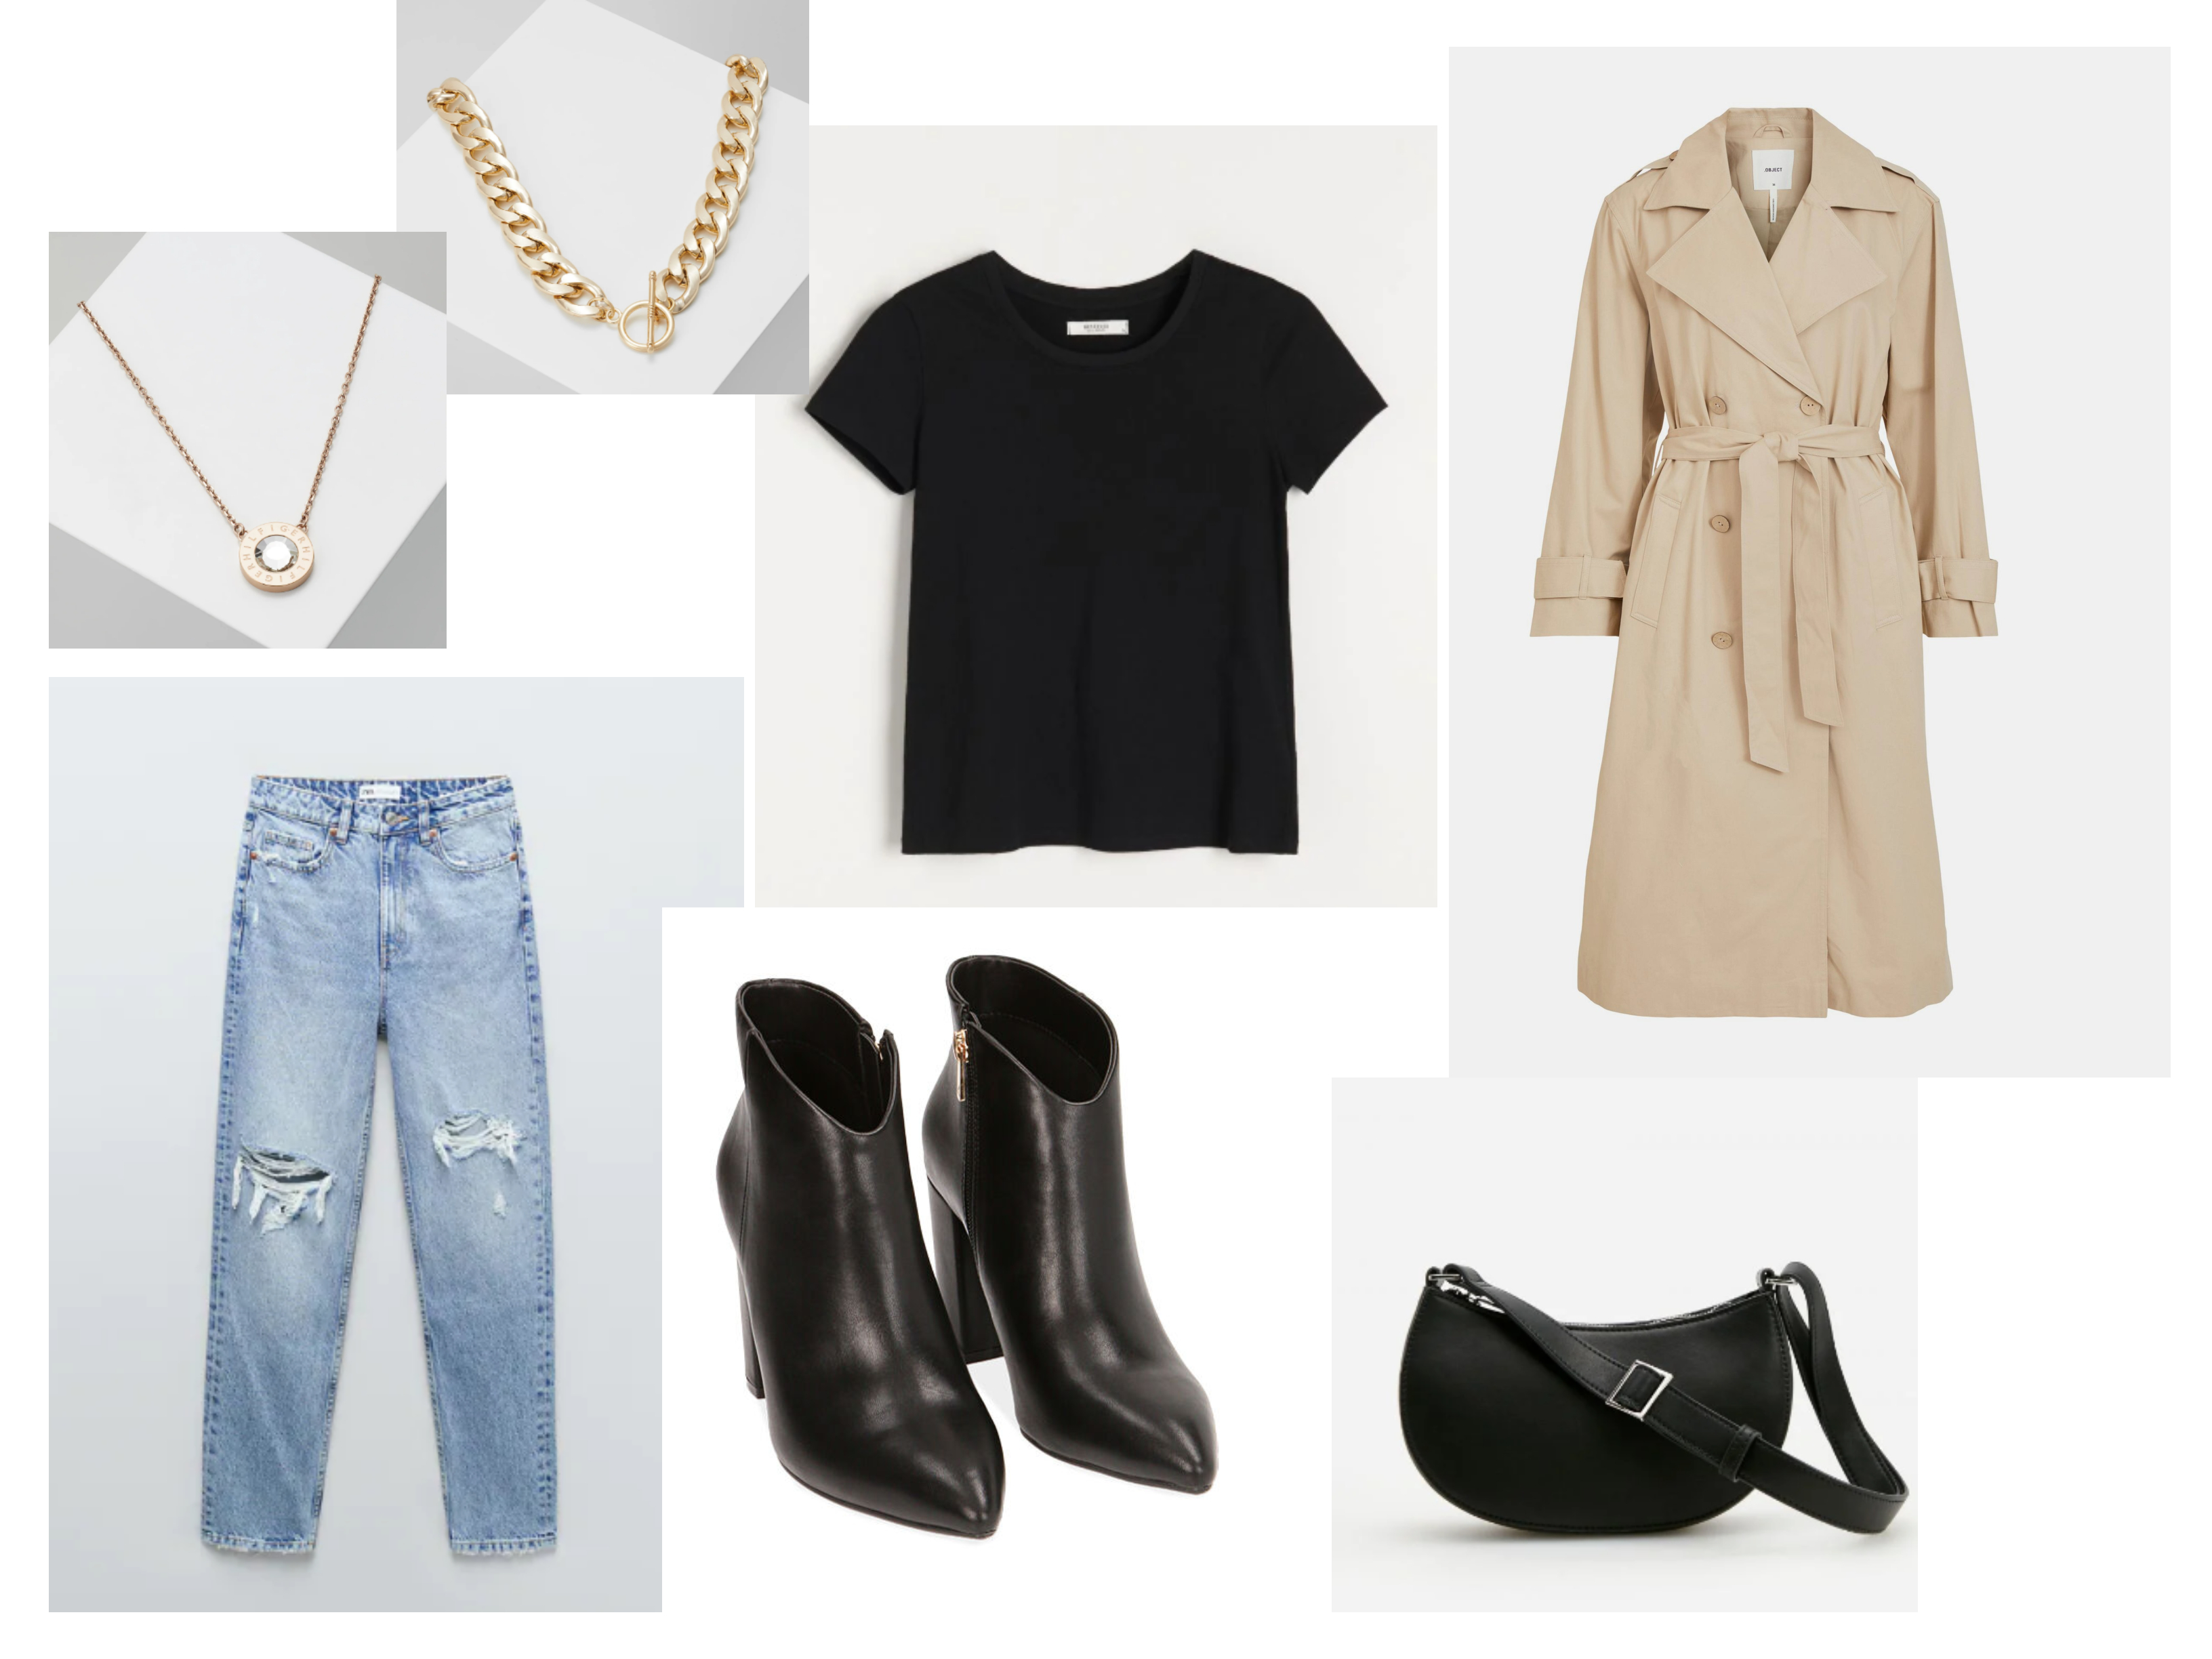 Adrienne 2 outfit